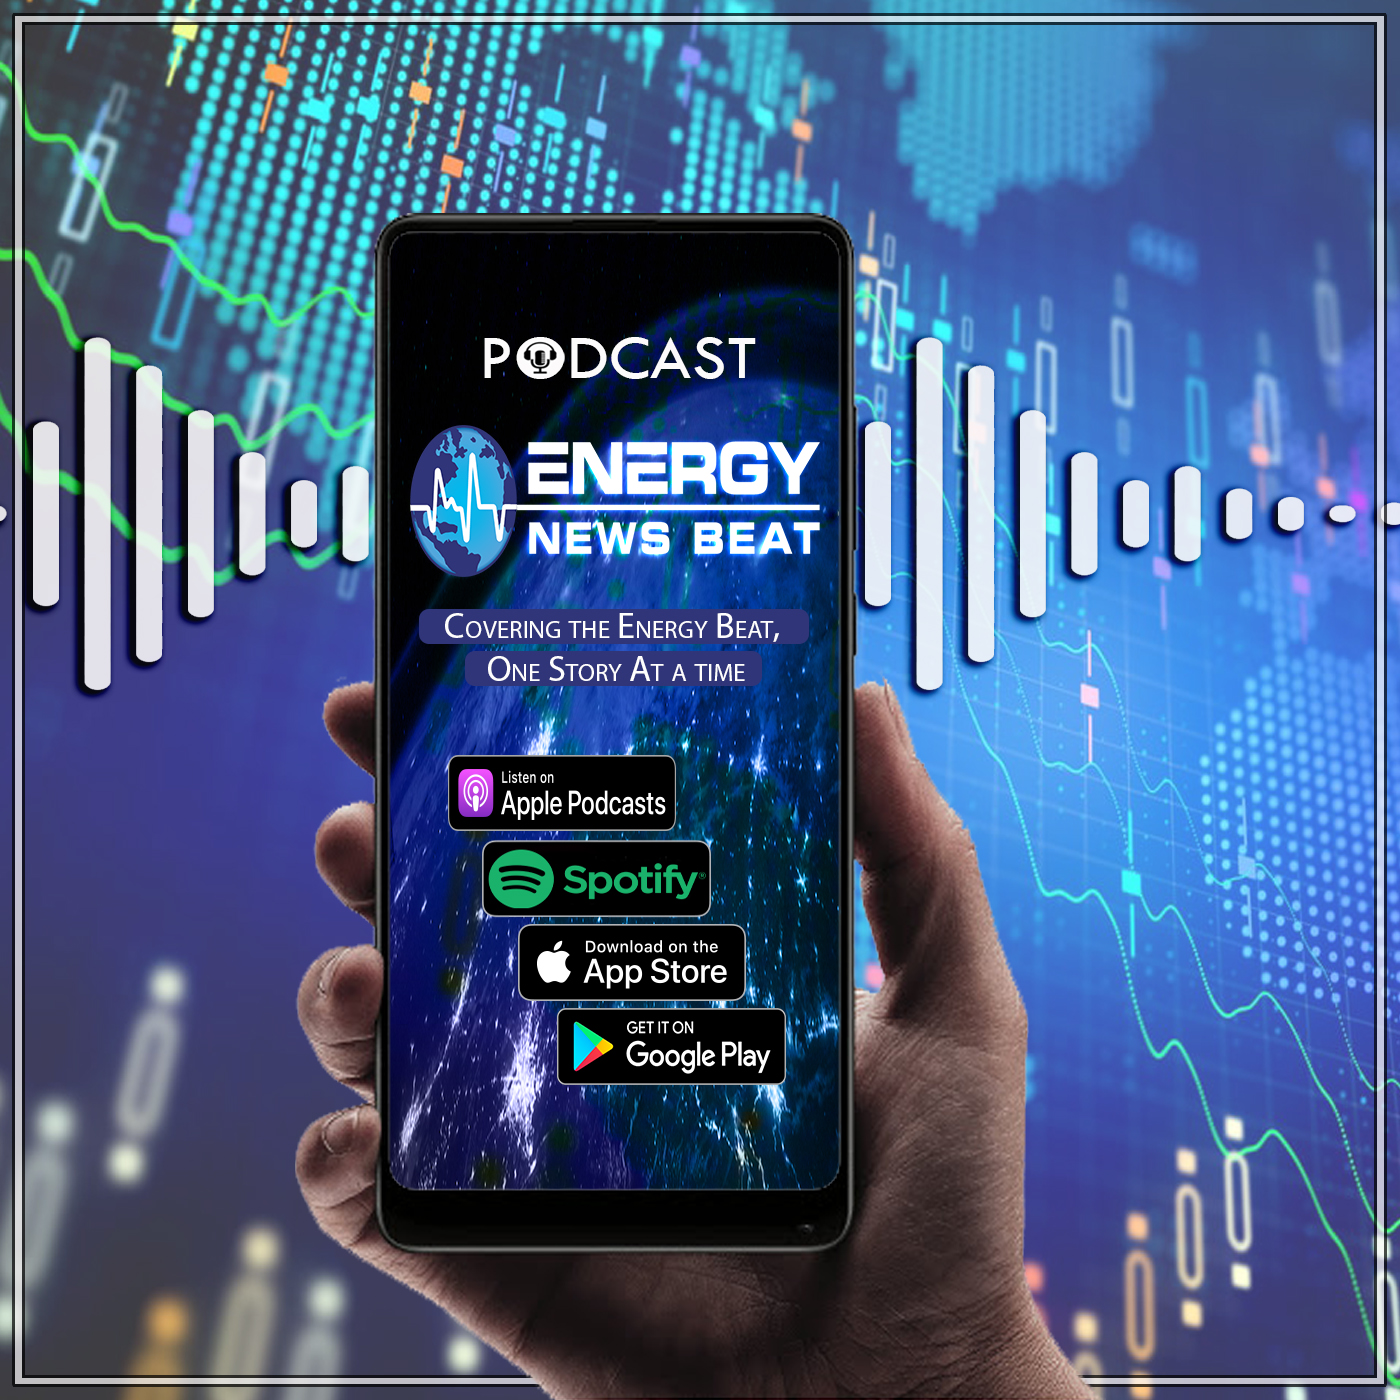 The Energy News Beat Podcast